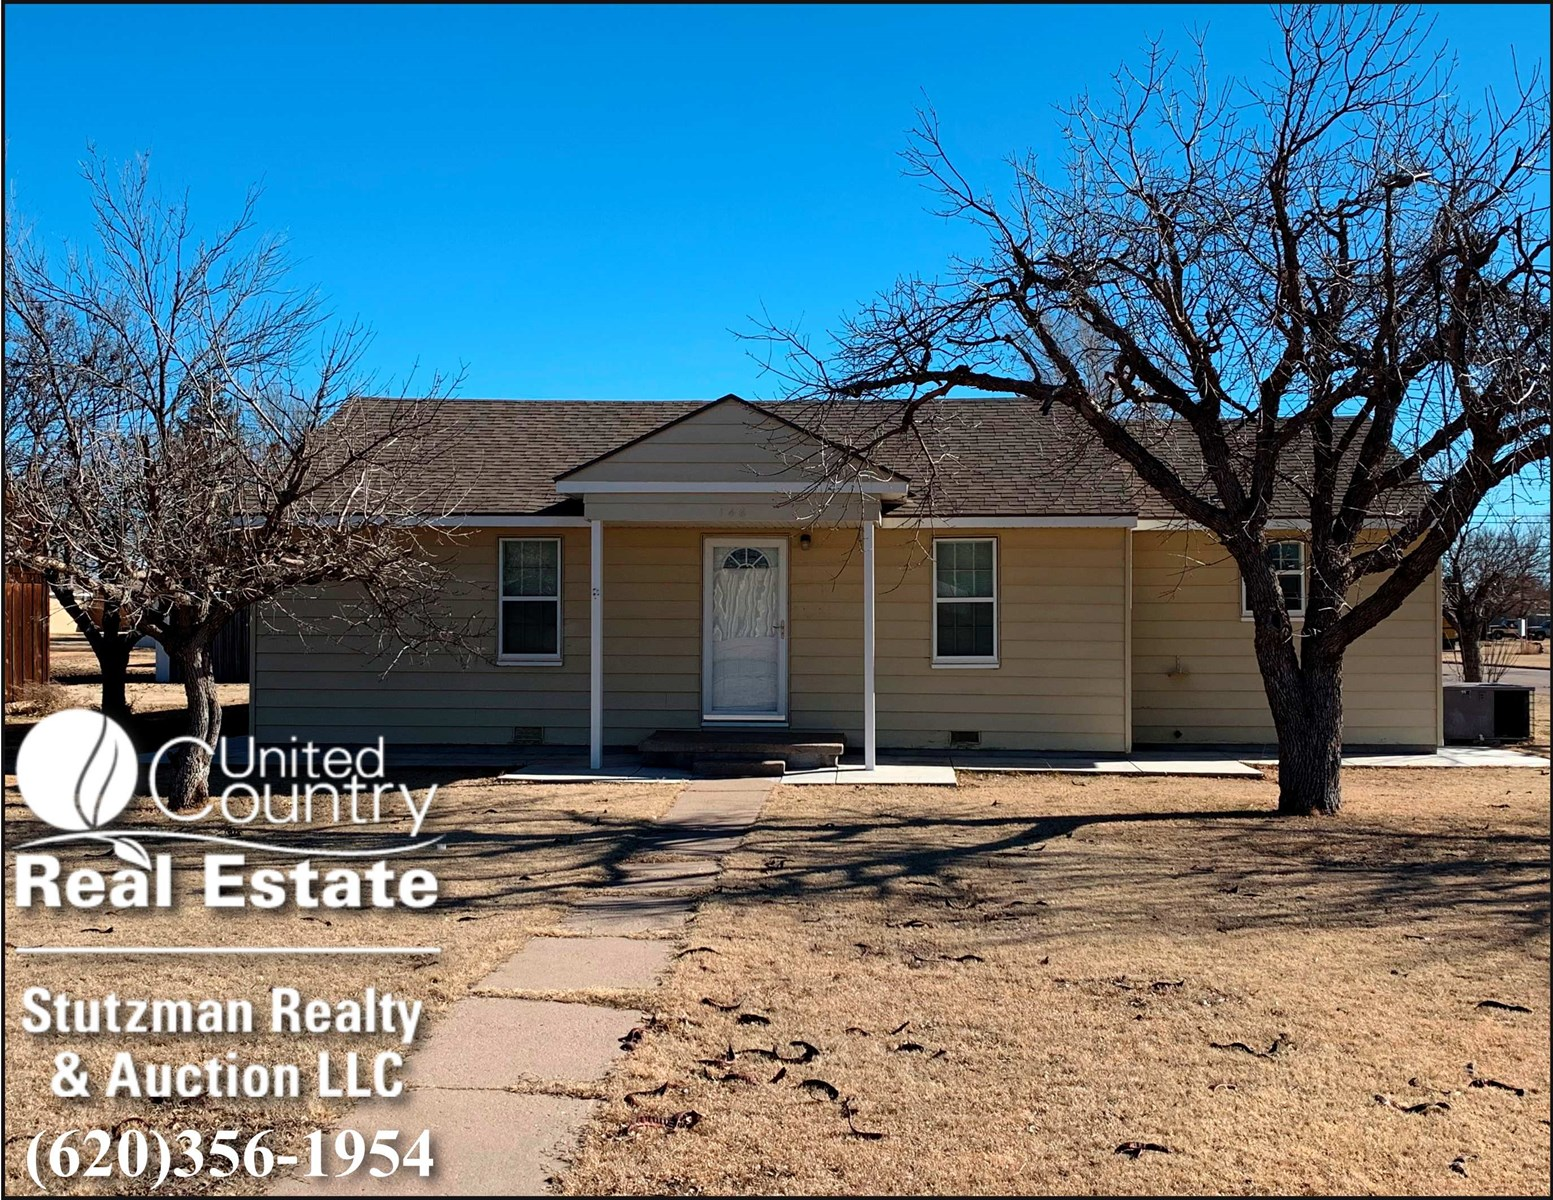 UPDATED AND AFFORDABLE HOME FOR SALE IN HUGOTON, KANSAS